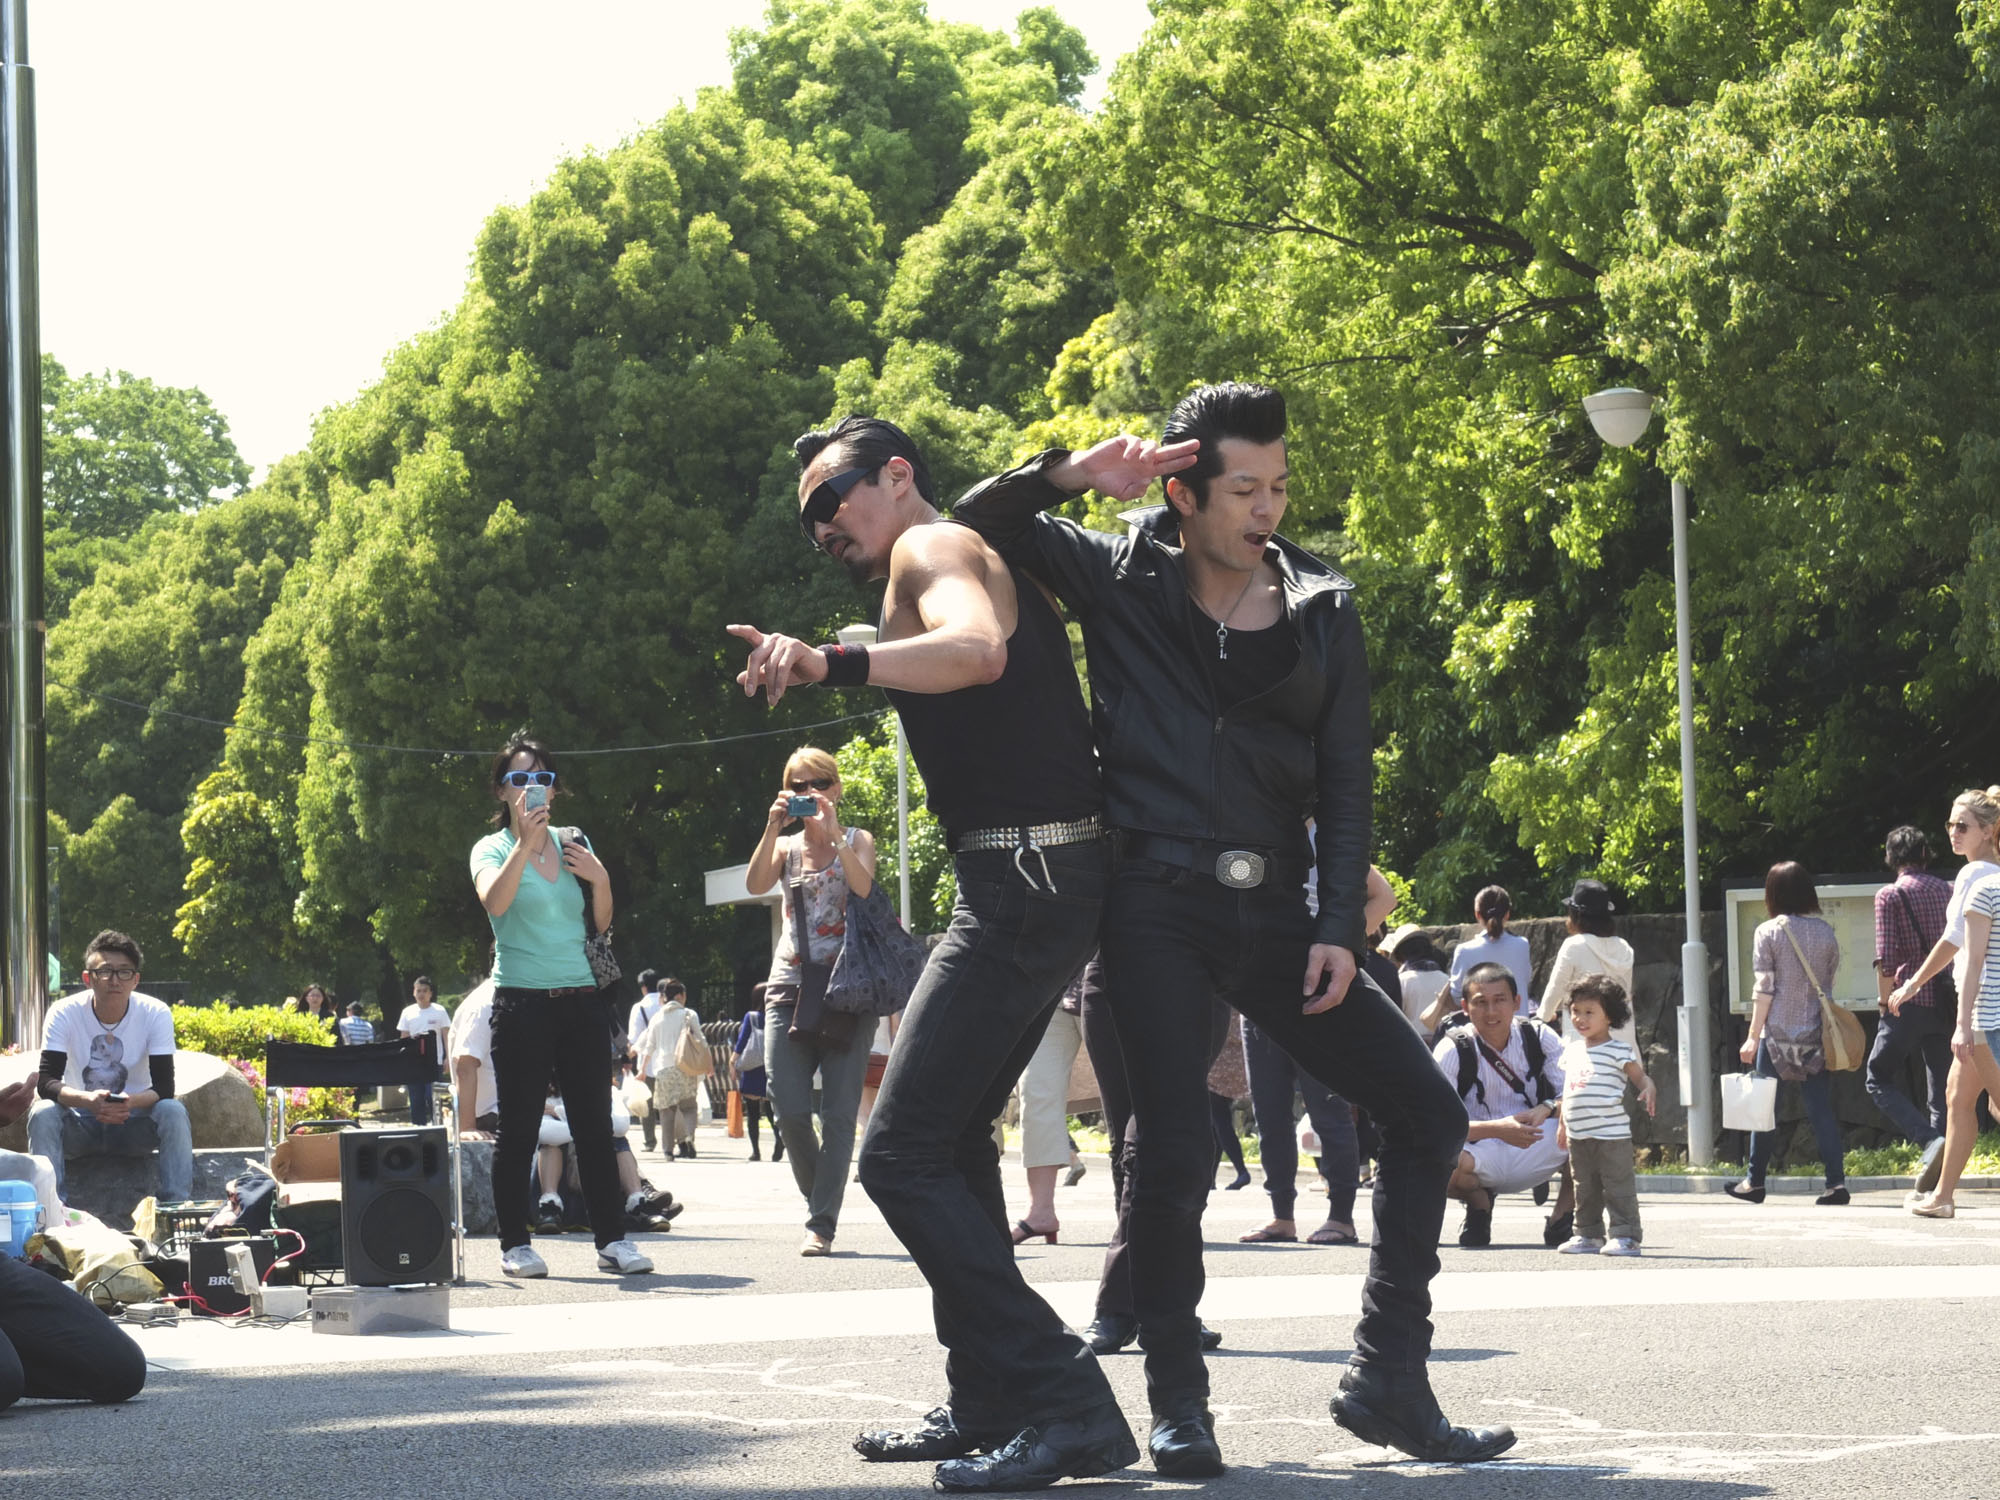 Yoyogi park is bustling with activity on a Sunday. Rockers come out to dance. Families come out to picnic and musicians come out to play.